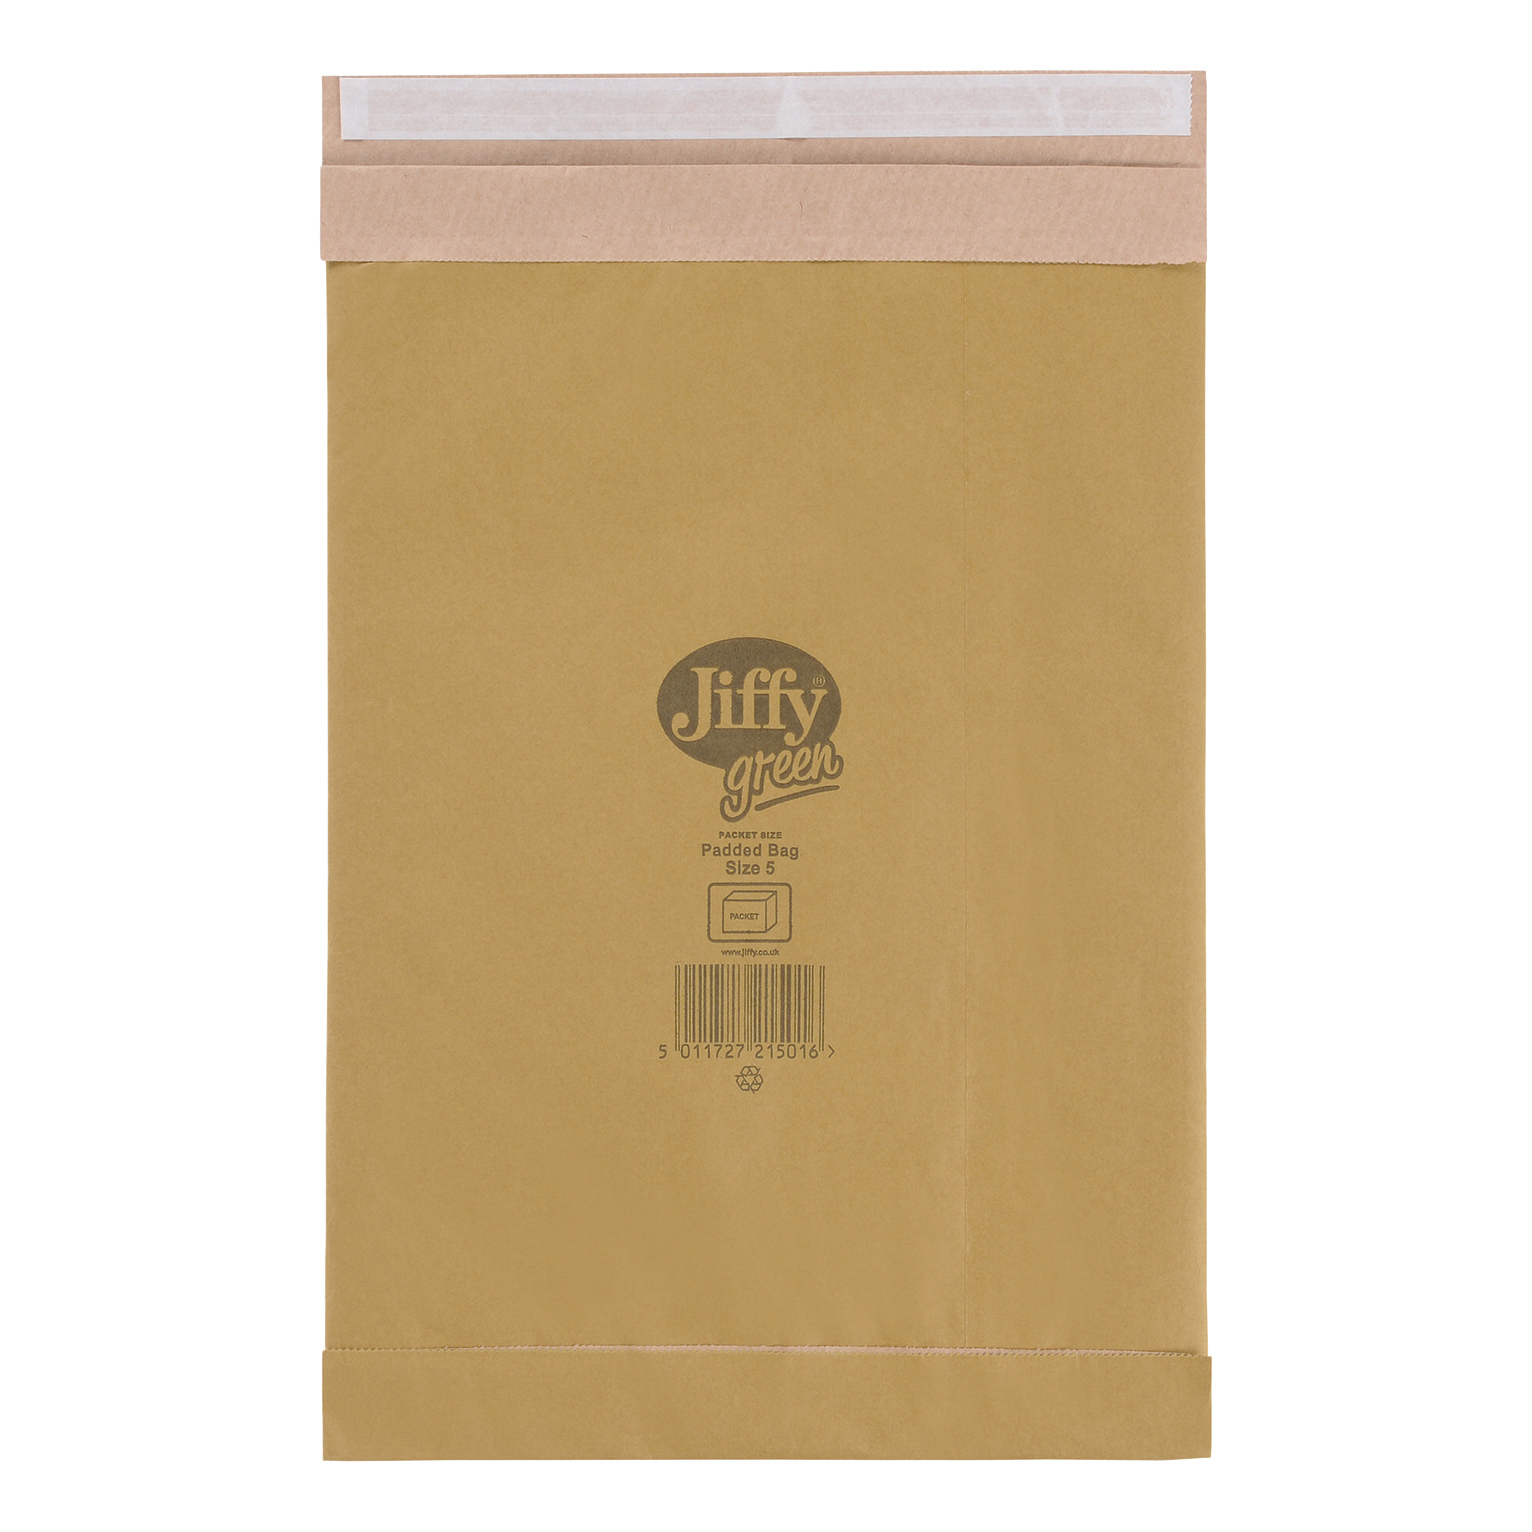 Jiffy Green Padded Bags with Kraft Outer and Recycled Cushioning Size 5 245x381mm Ref 01901 Pack 25